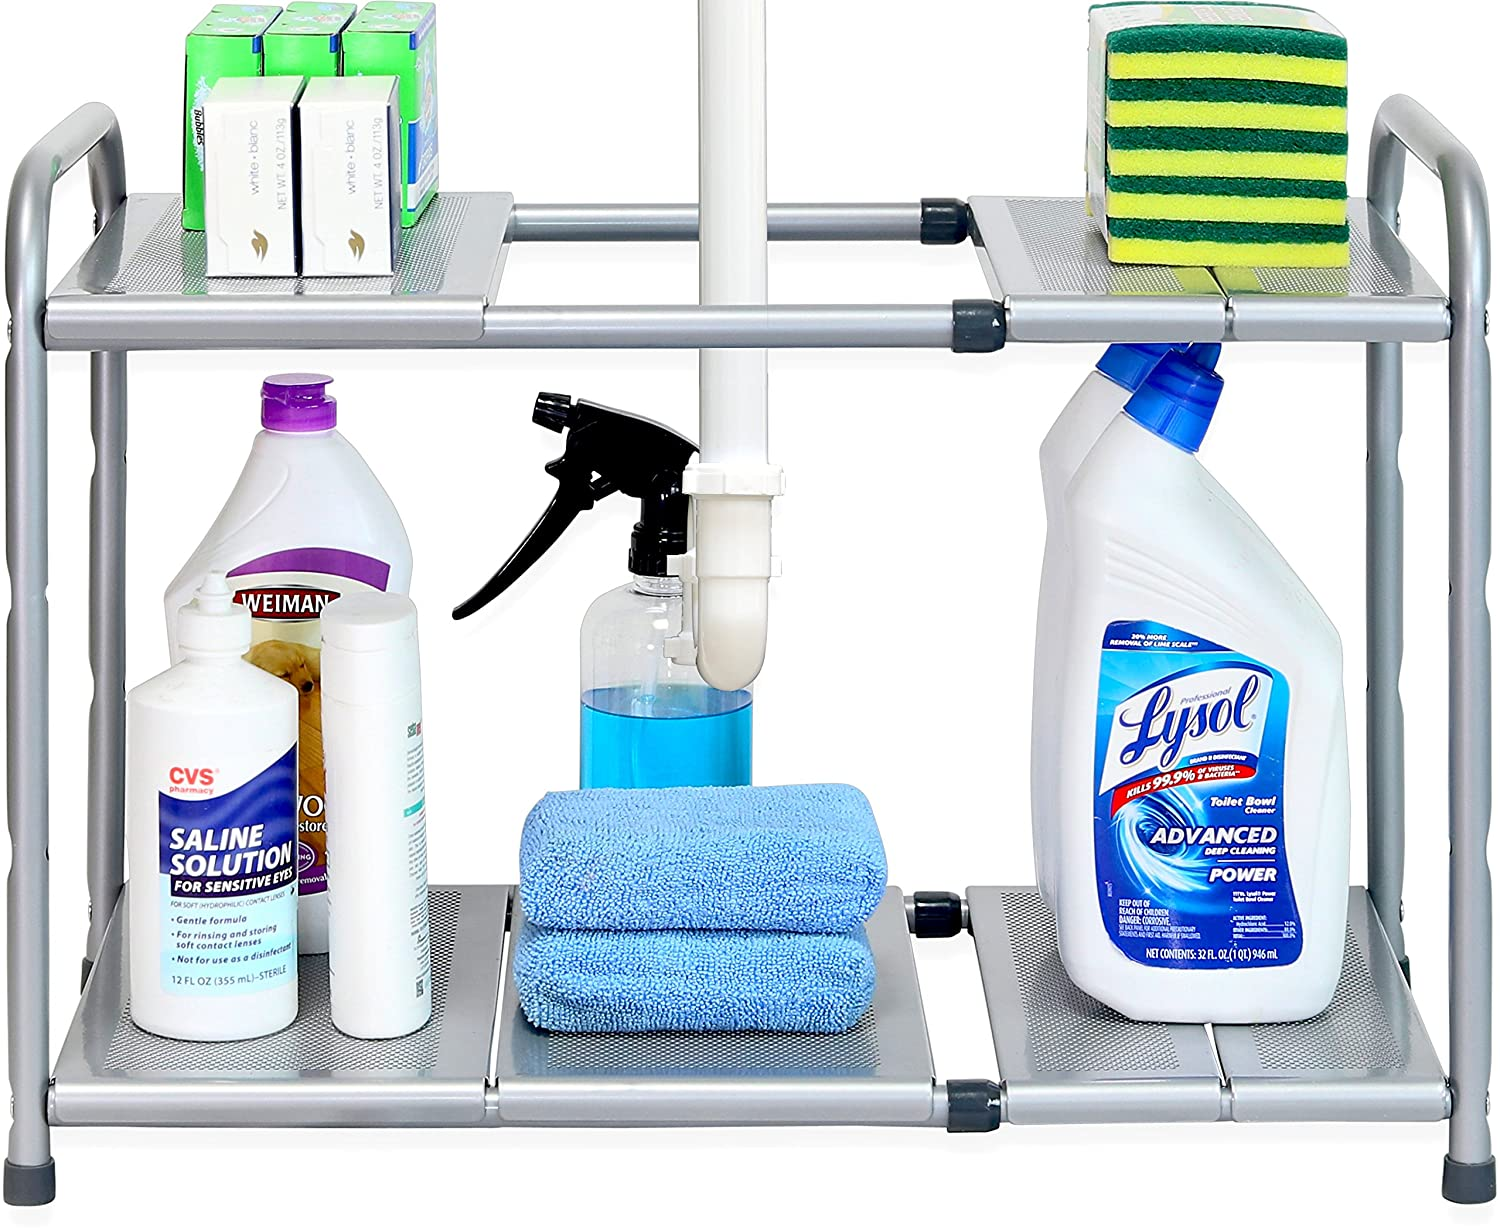 Under Sink 2 Tier Expandable Shelf Organizer Rack, Silver (expand from 15 to 25 inches)